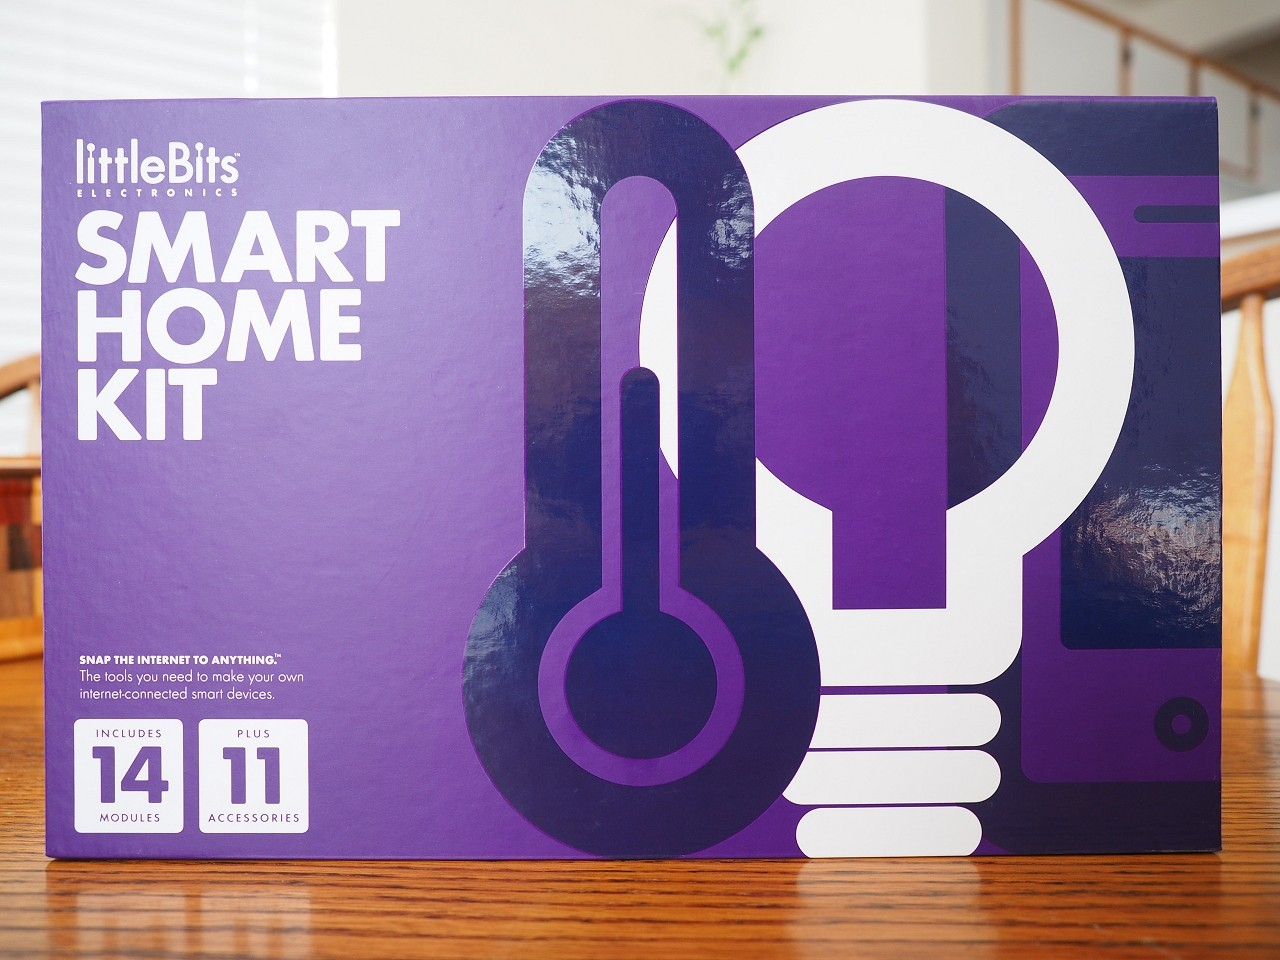 littlebits smart home kit review photo gallery techspot. Black Bedroom Furniture Sets. Home Design Ideas